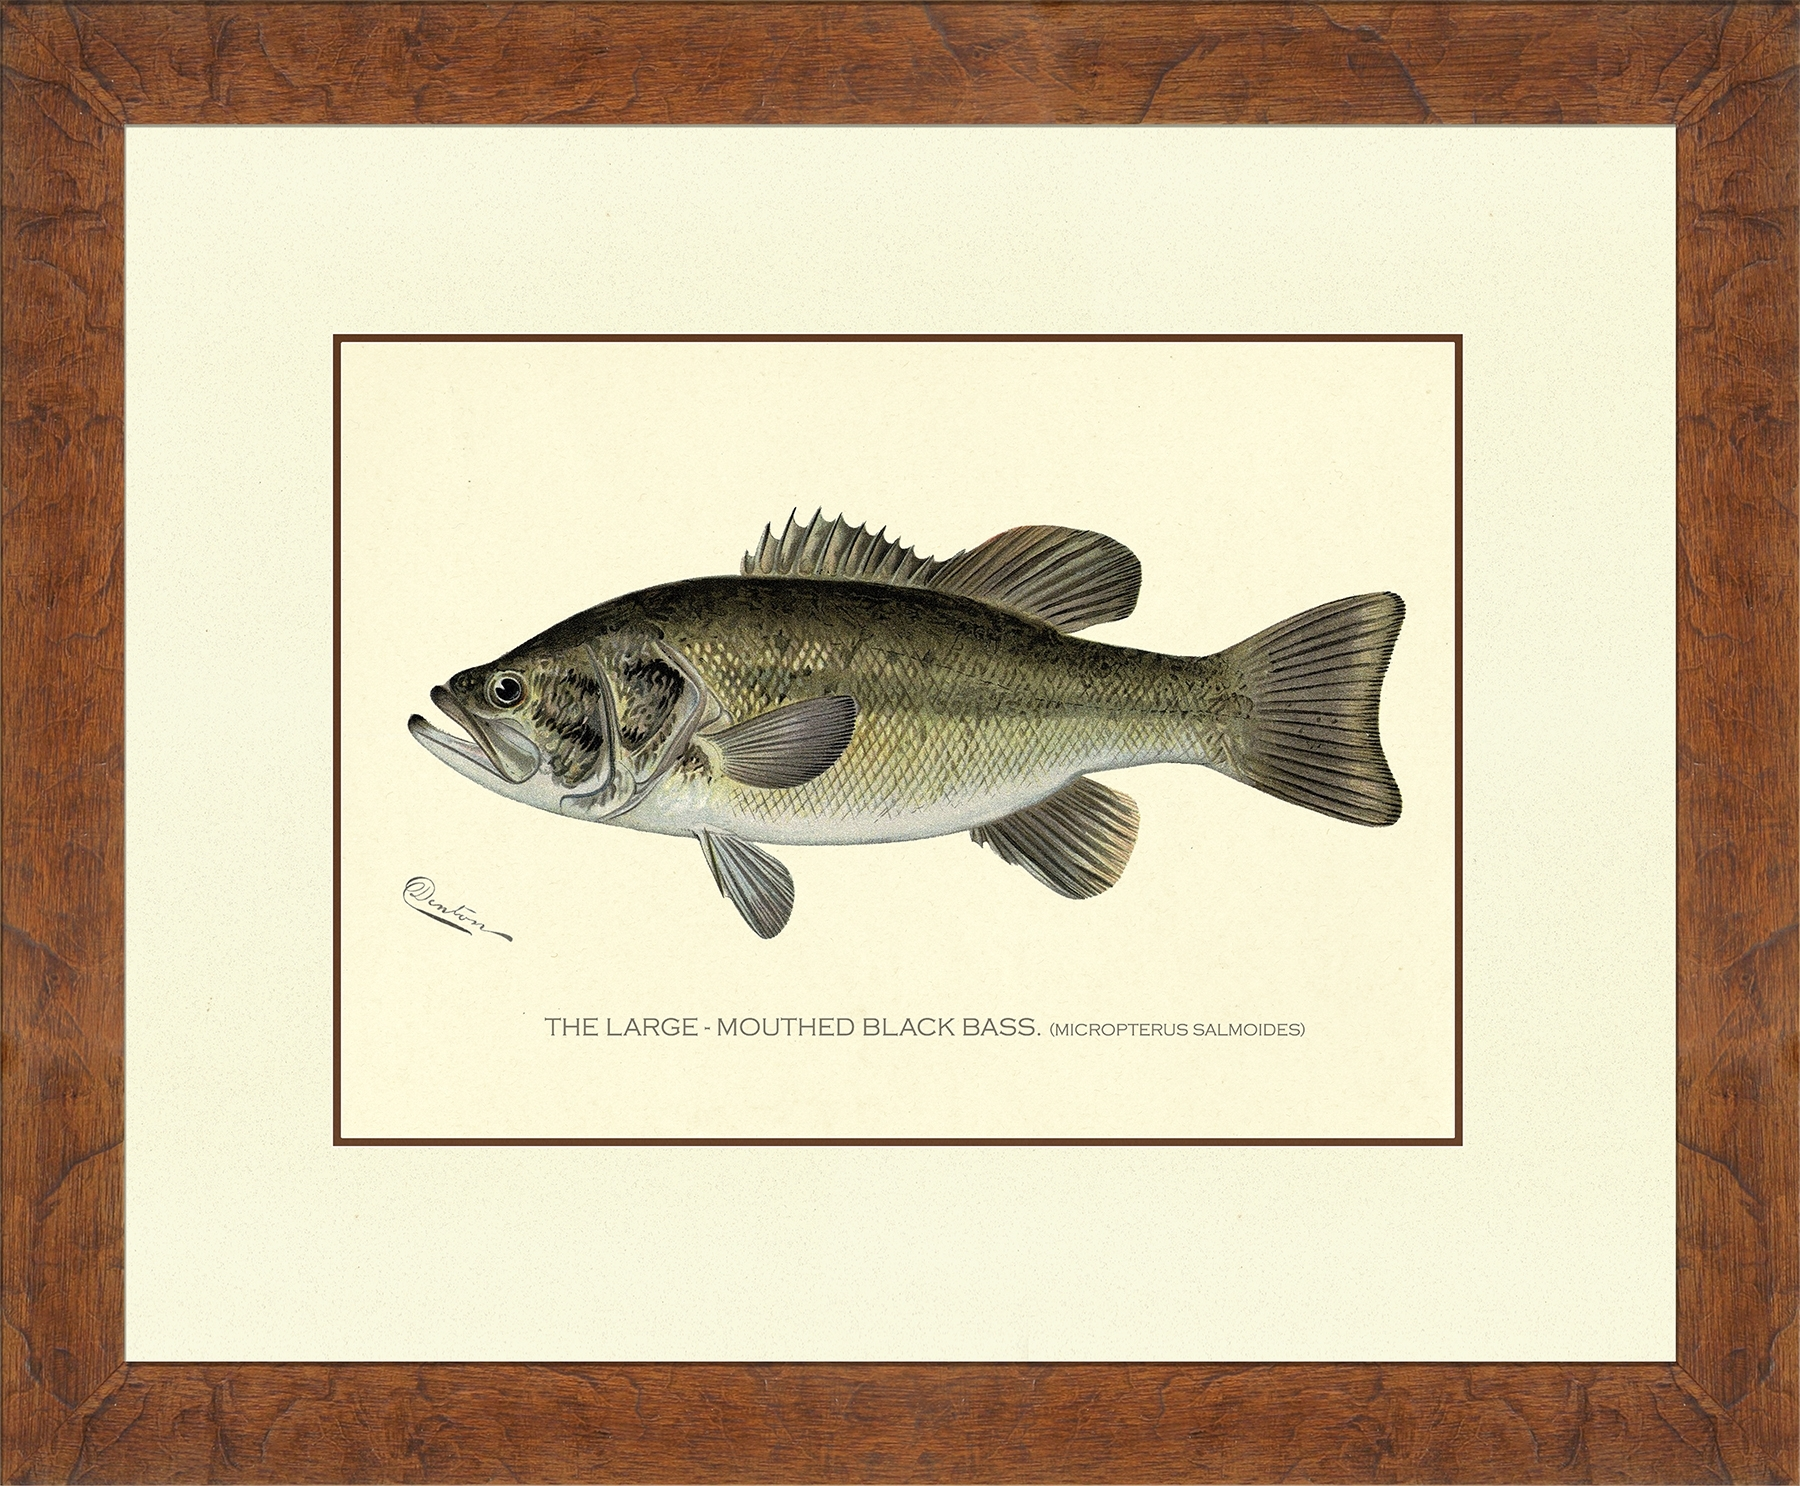 Denton Fish : Nostalgia Fine Art - Antique Prints - Giclee Prints regarding Best and Newest Bass Framed Art Prints